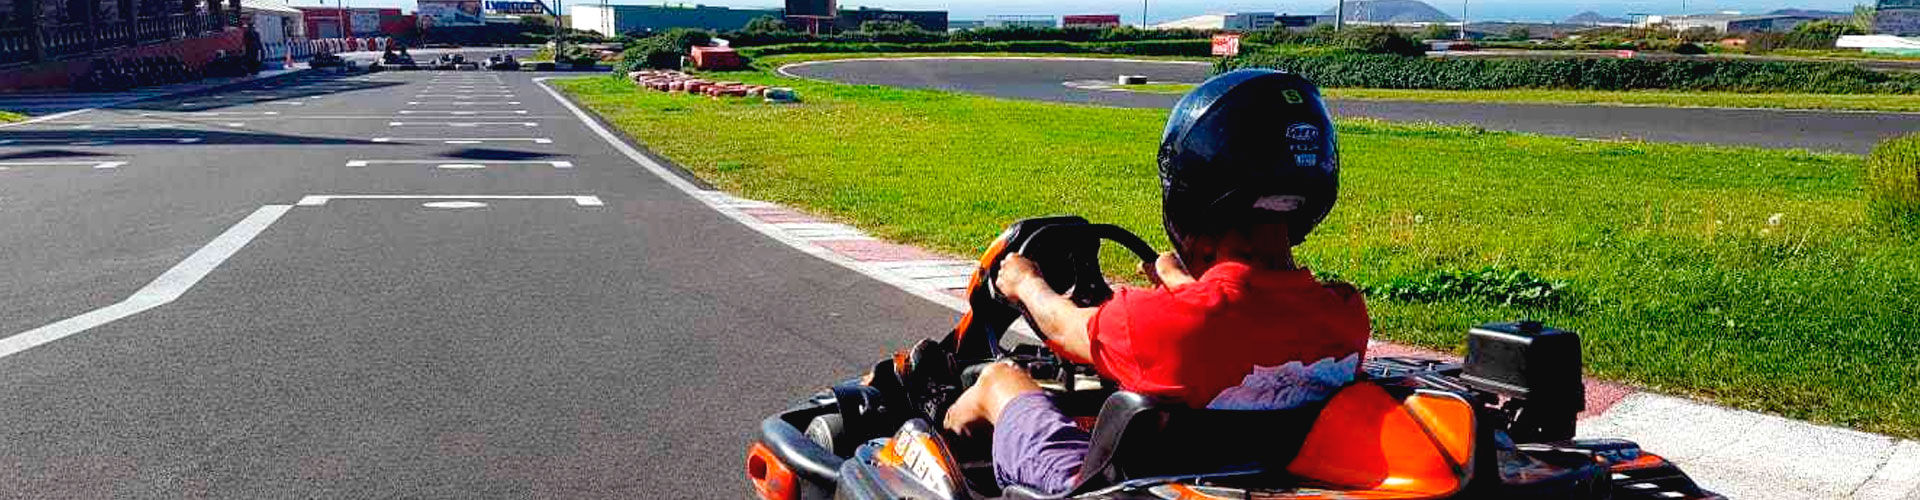 Karting Club de Tenerife